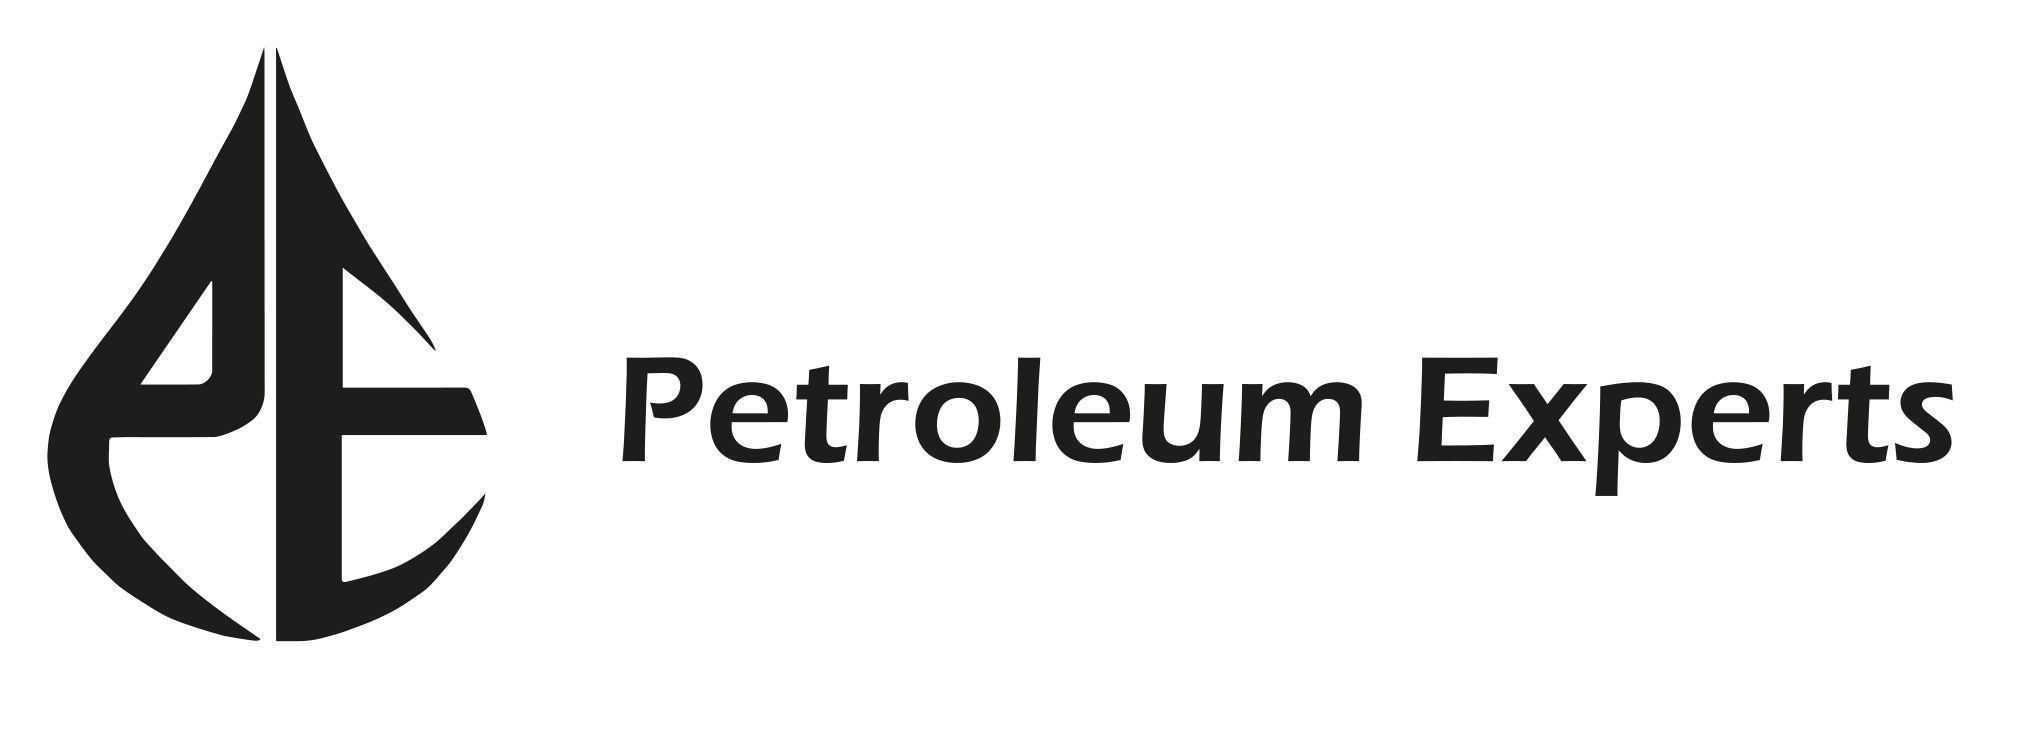 Petroleum Experts